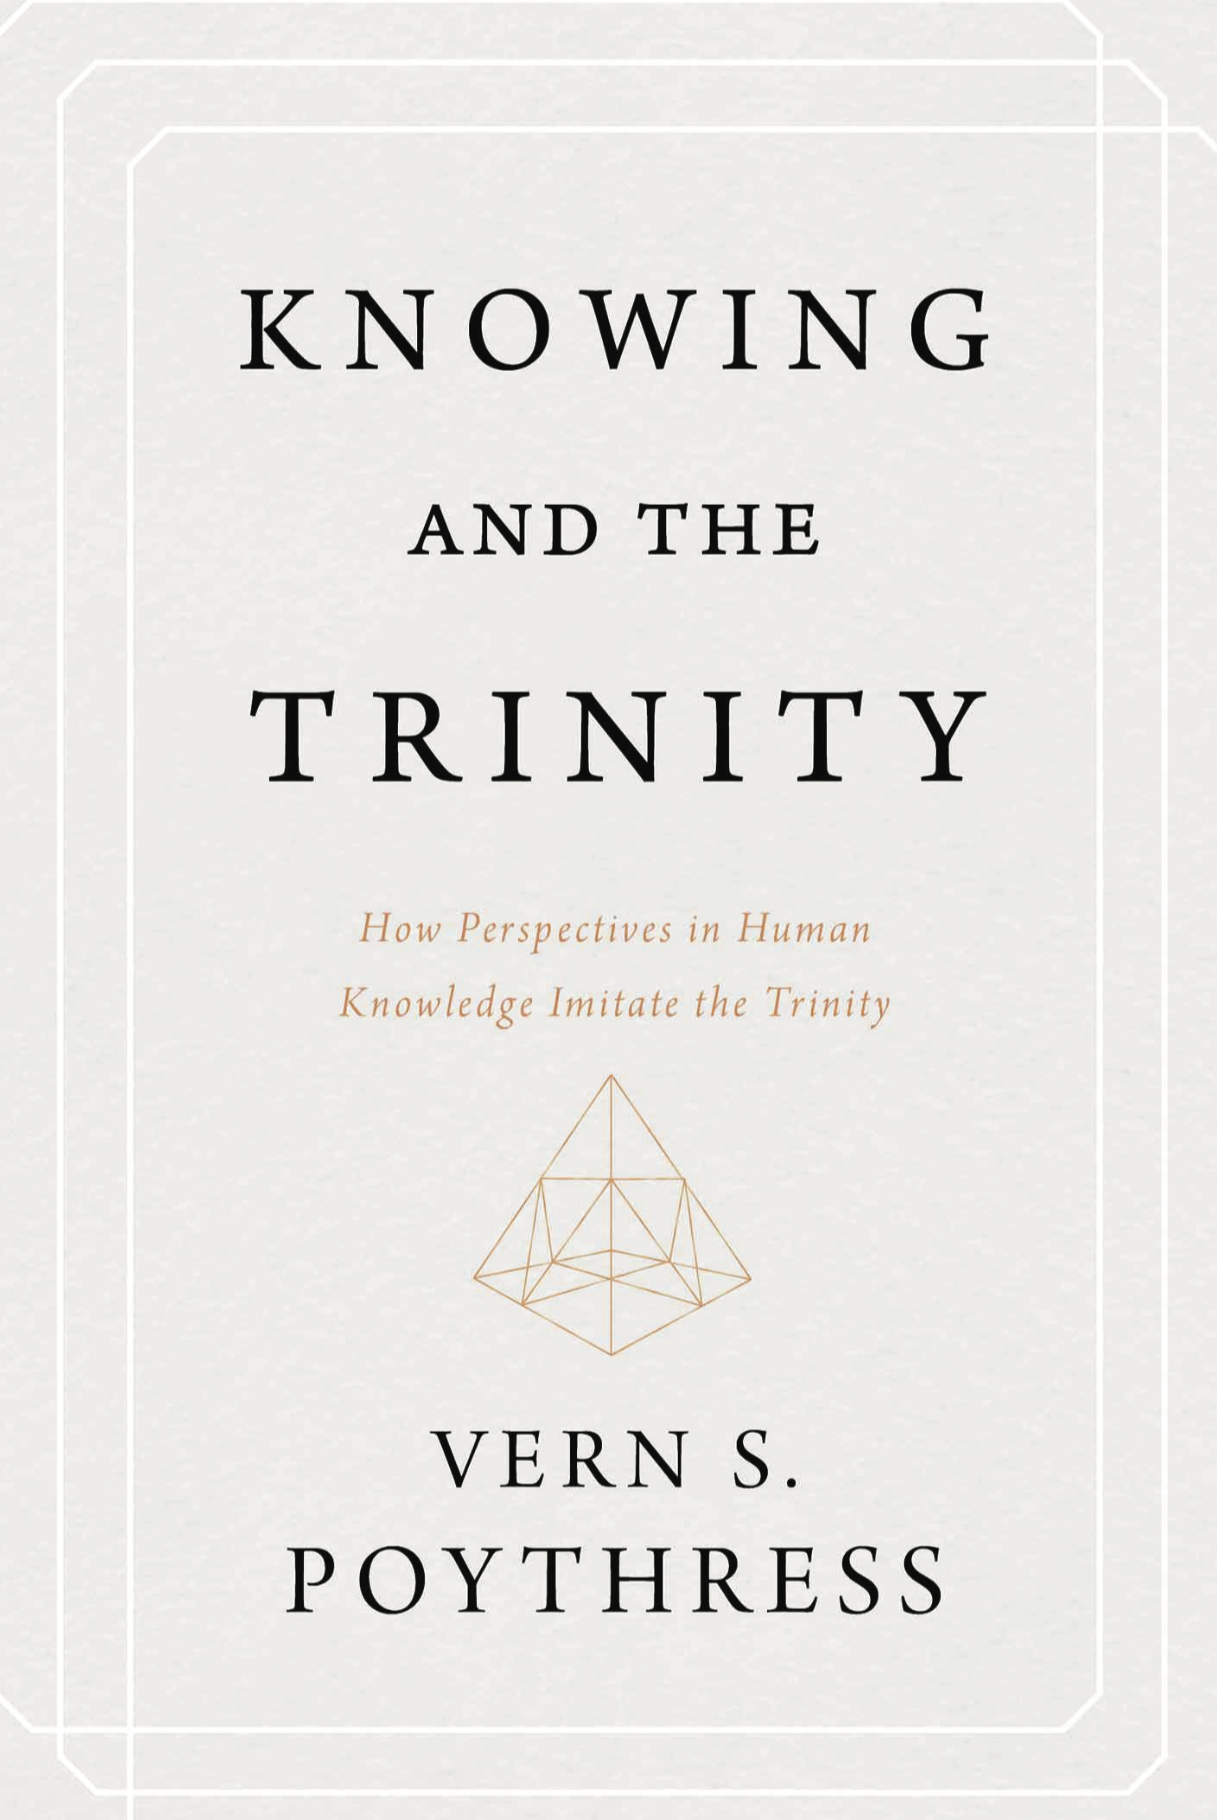 Knowing the Trinity: How Perspectives in Human Knowledge Imitate the Trinity (Excerpt)